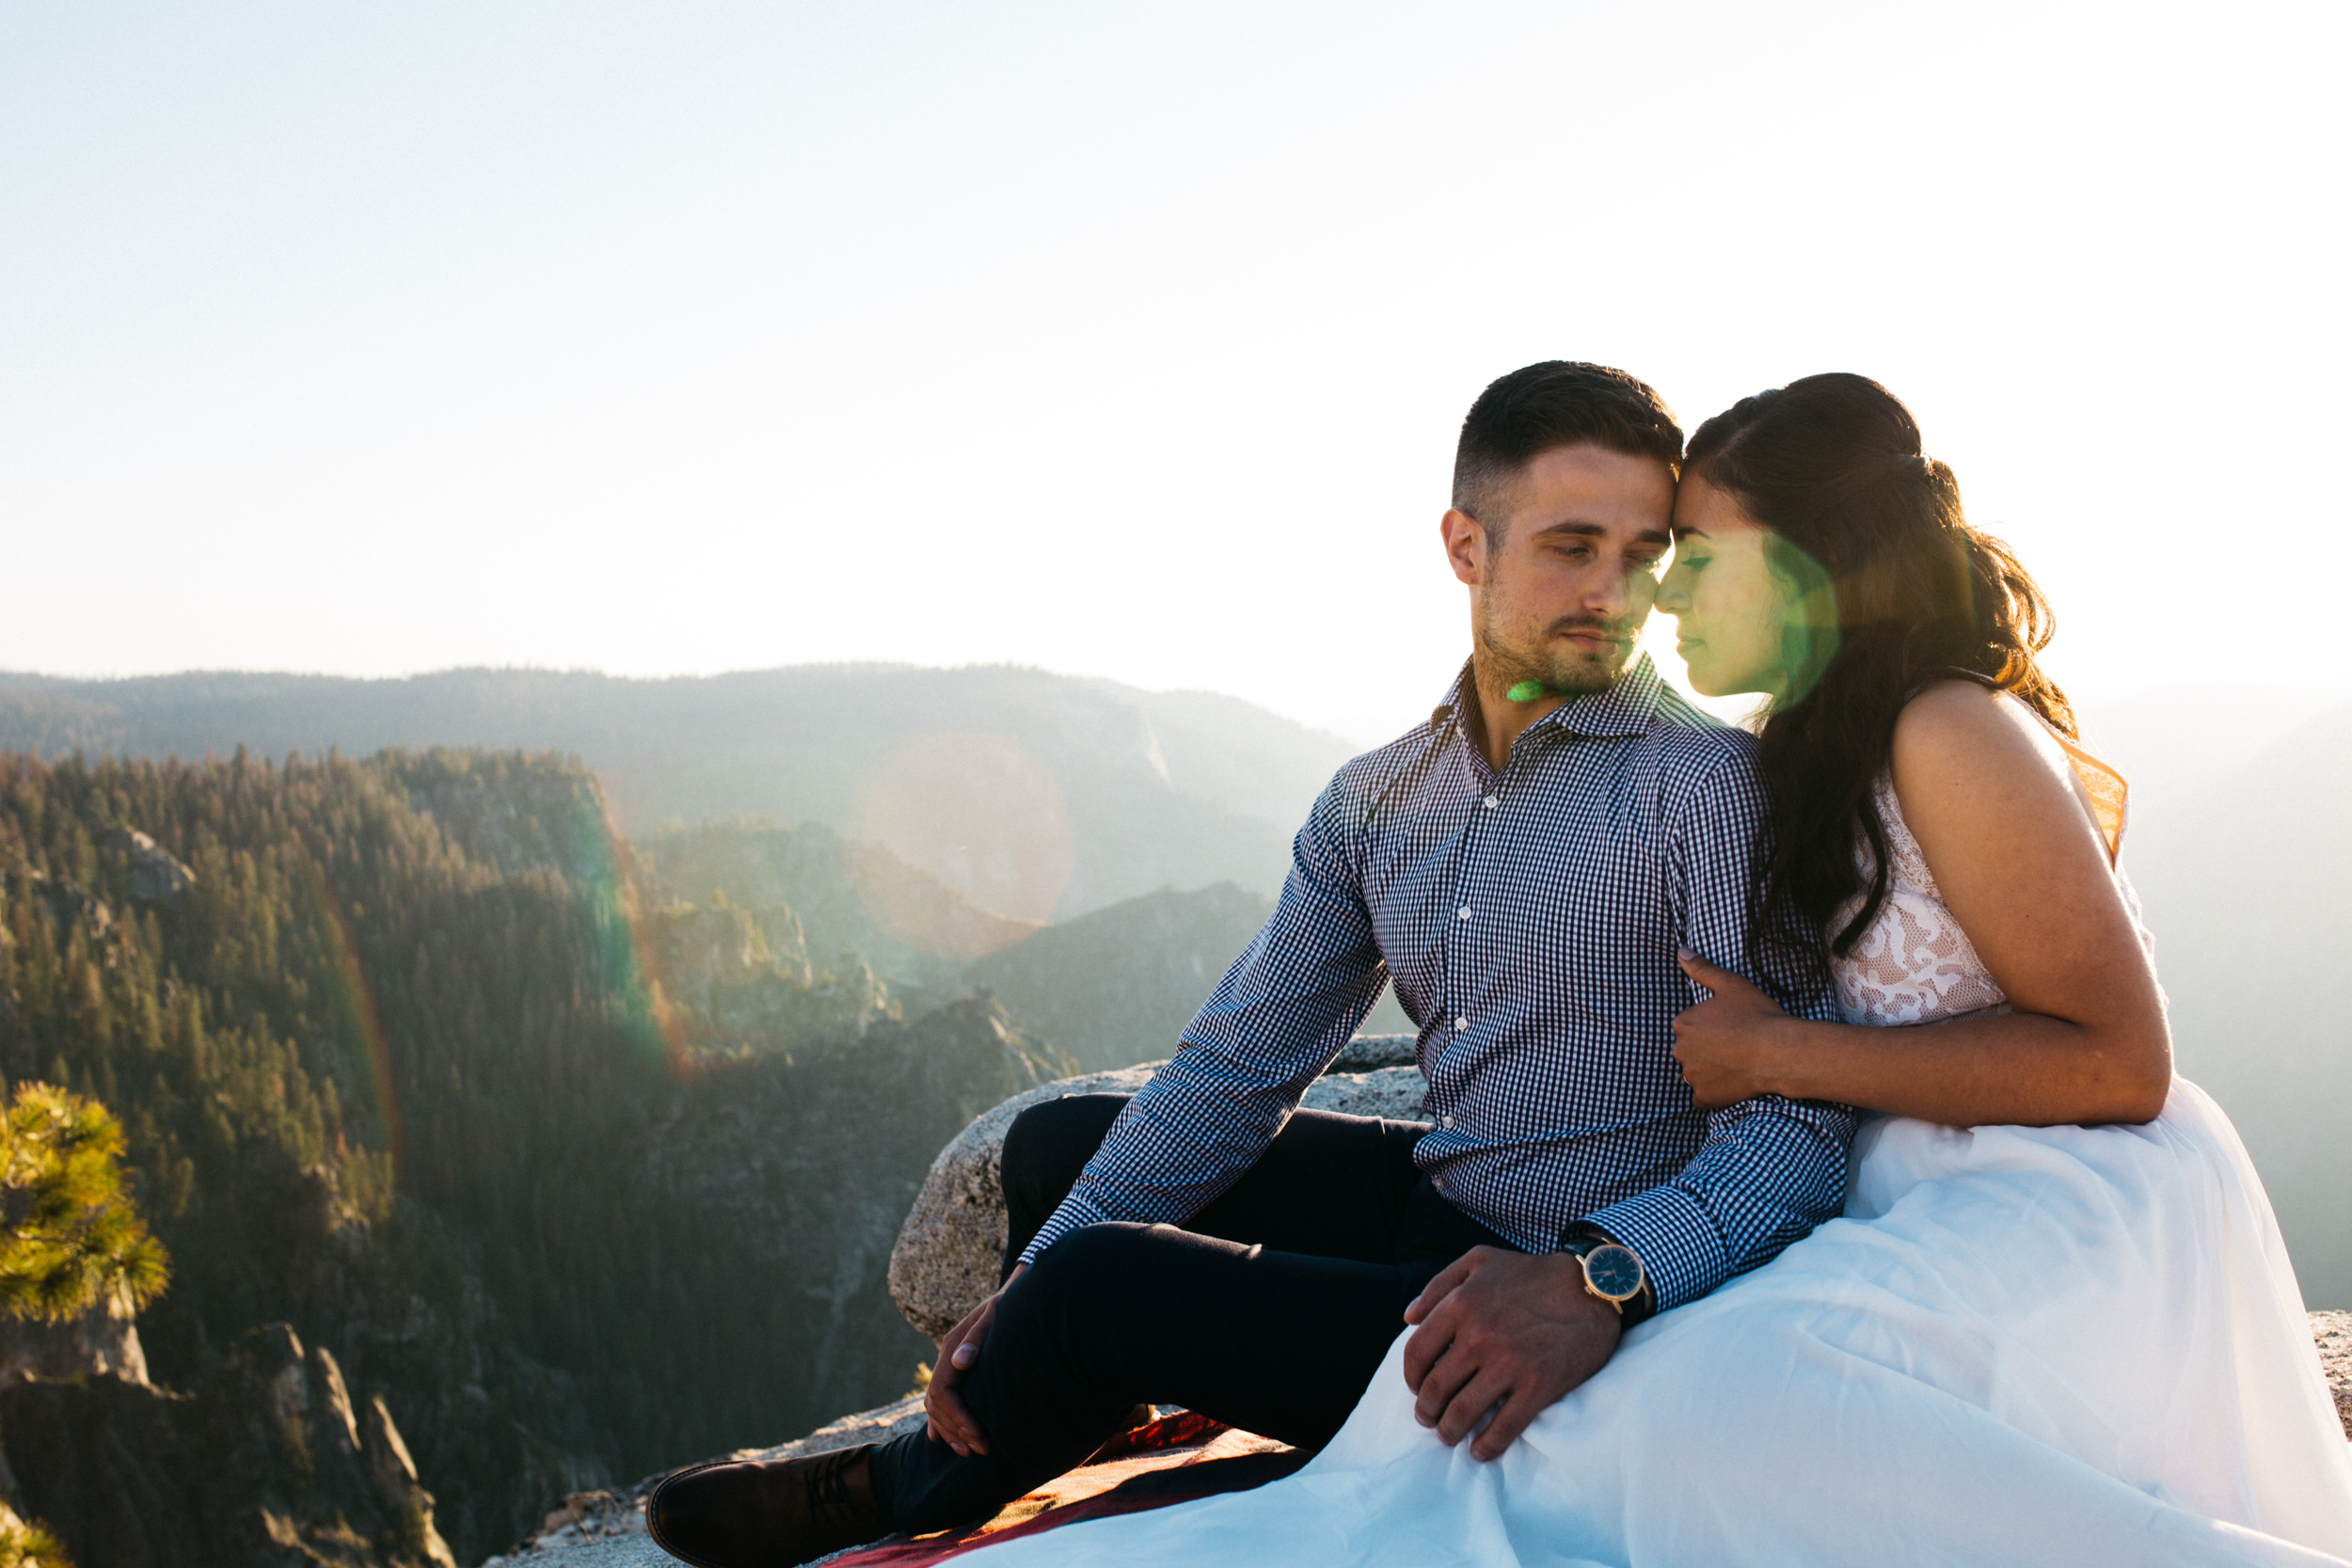 taft_point_yosemite_engagement_session-11.jpg